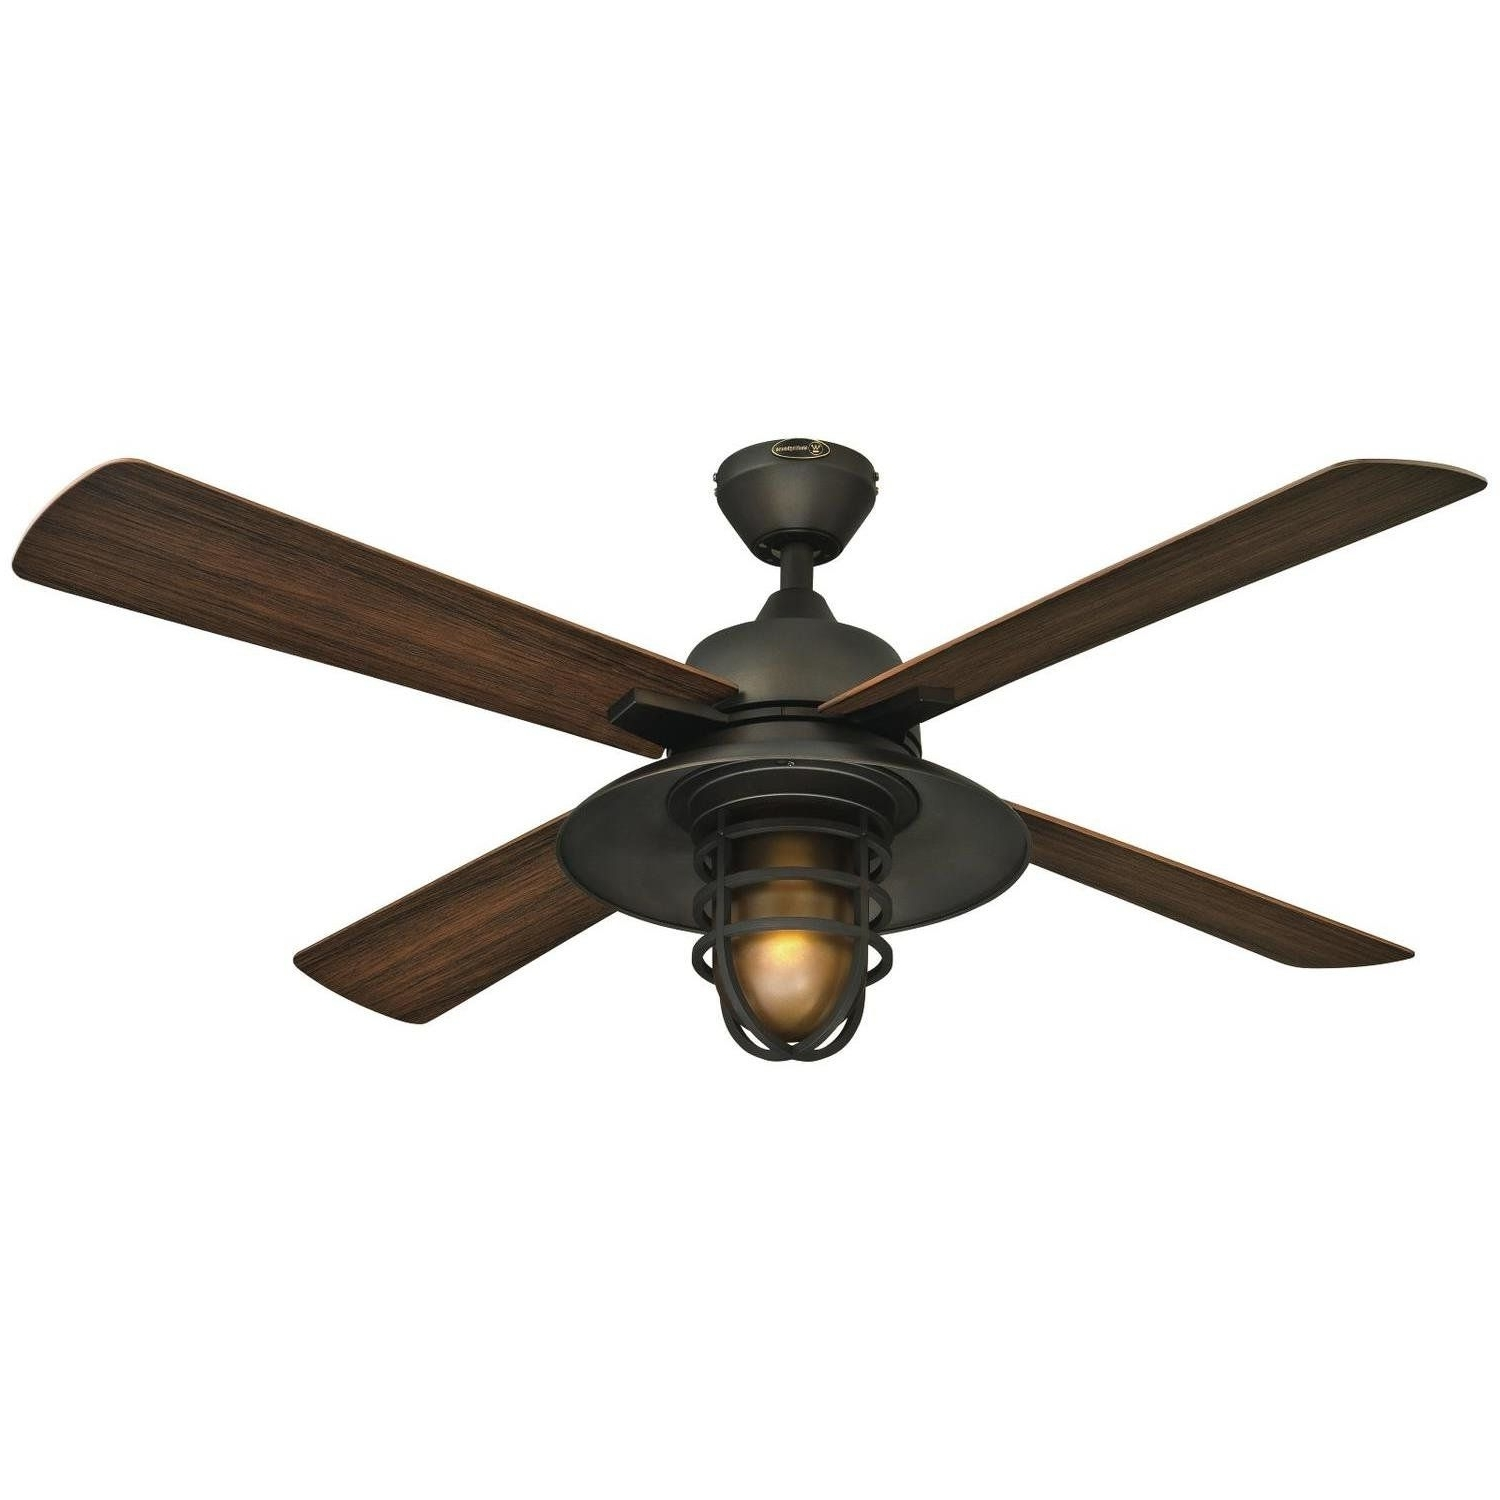 Best Rustic Ceiling Fans You Ull Love Wayfair Pict For With Lights Pertaining To Well Liked Hampton Bay Outdoor Lighting At Wayfair (View 14 of 20)